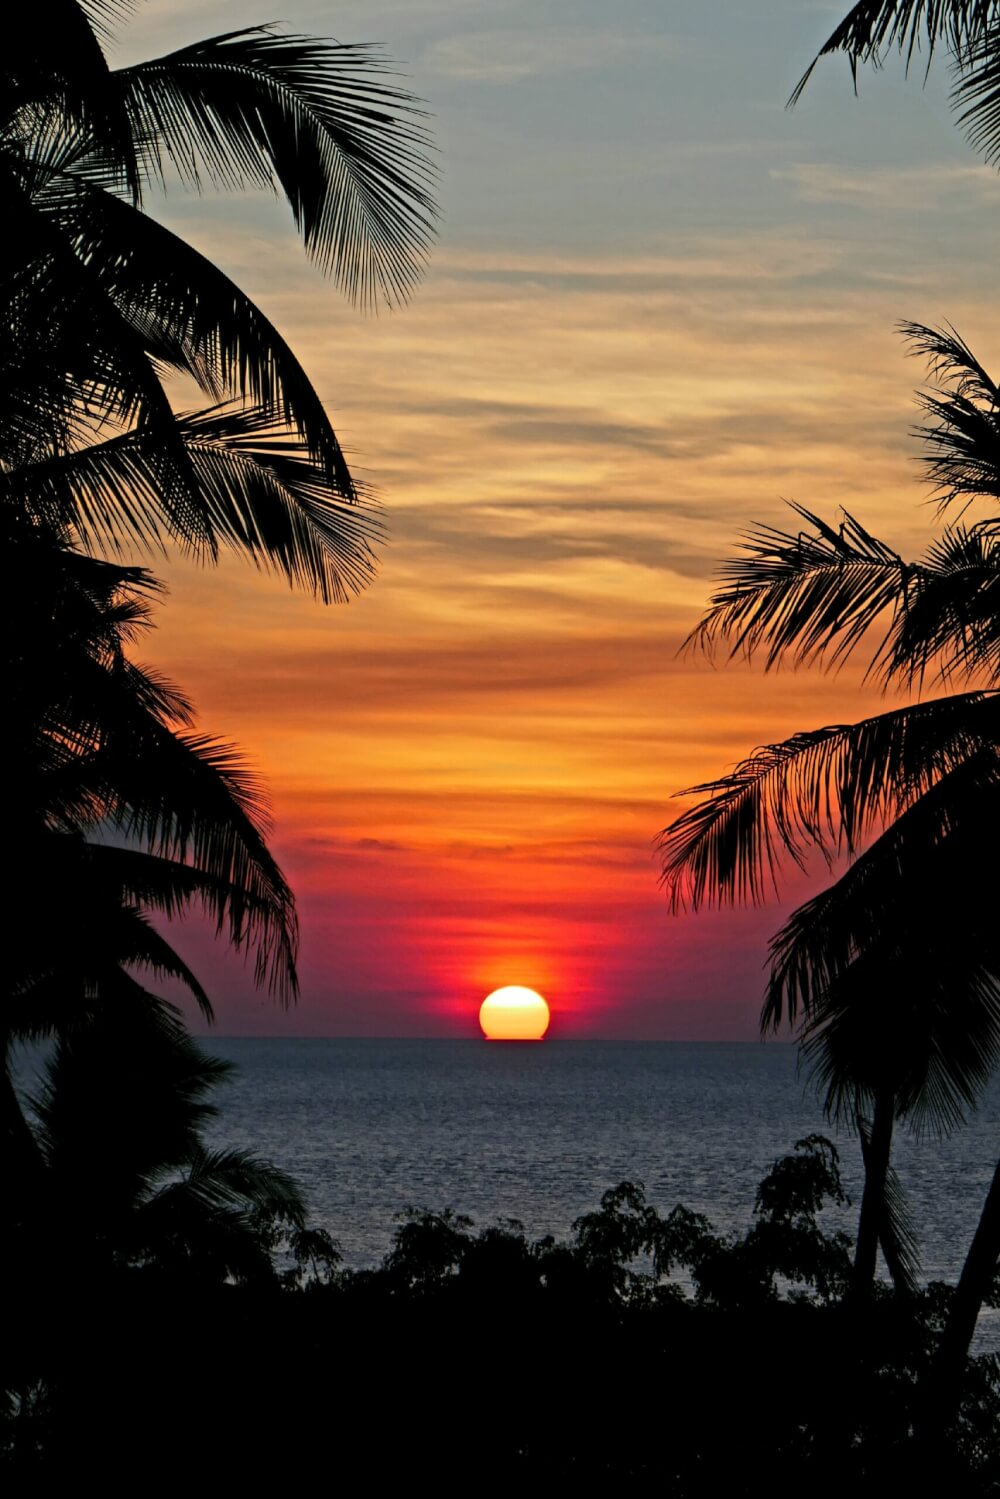 Sun setting over horizon in the Wakatobi Islands in Indonesia